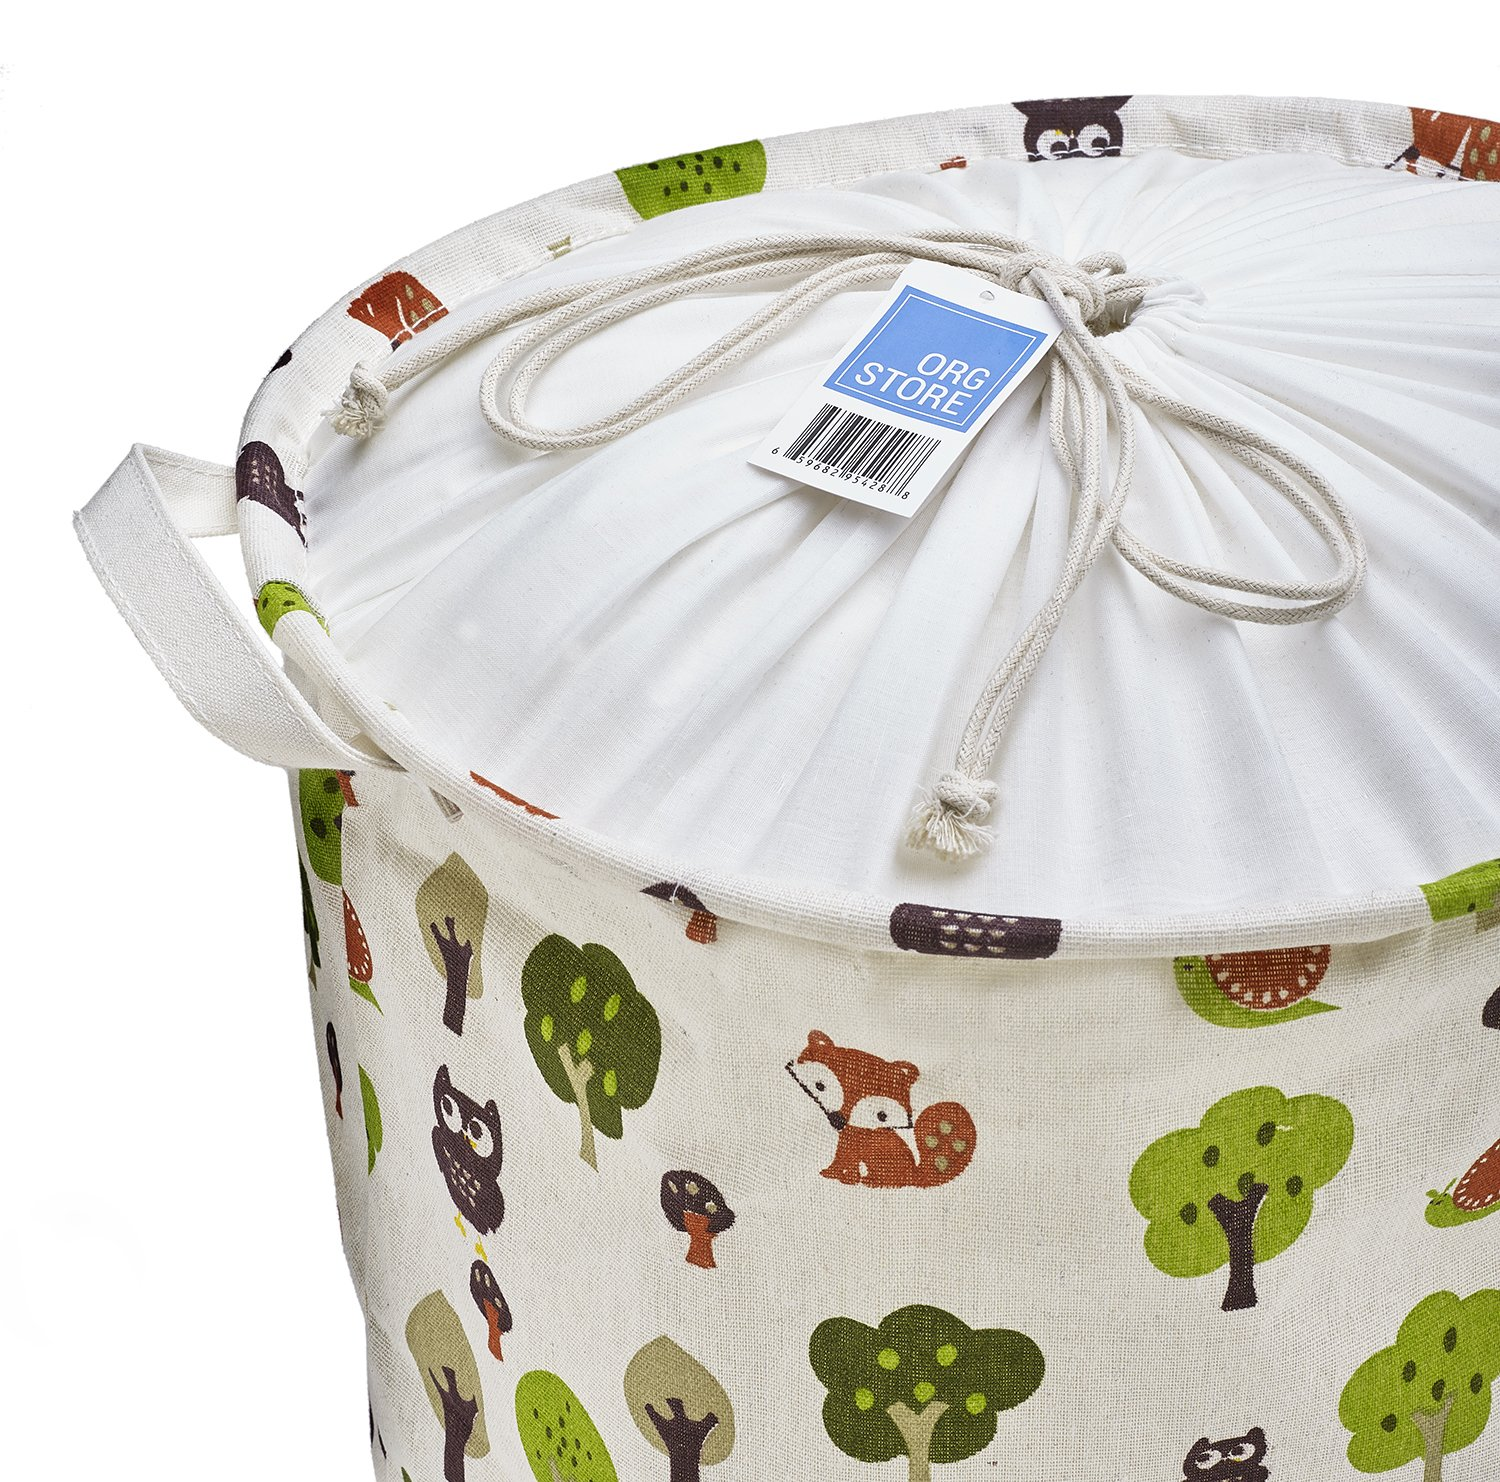 Org Store Cotton Fabric Collapsible Laundry Basket Dirty Clothes Hamper - Perfect for College Dorms, Kids Room & Bathroom (Forest Patterned) by Org Store (Image #2)